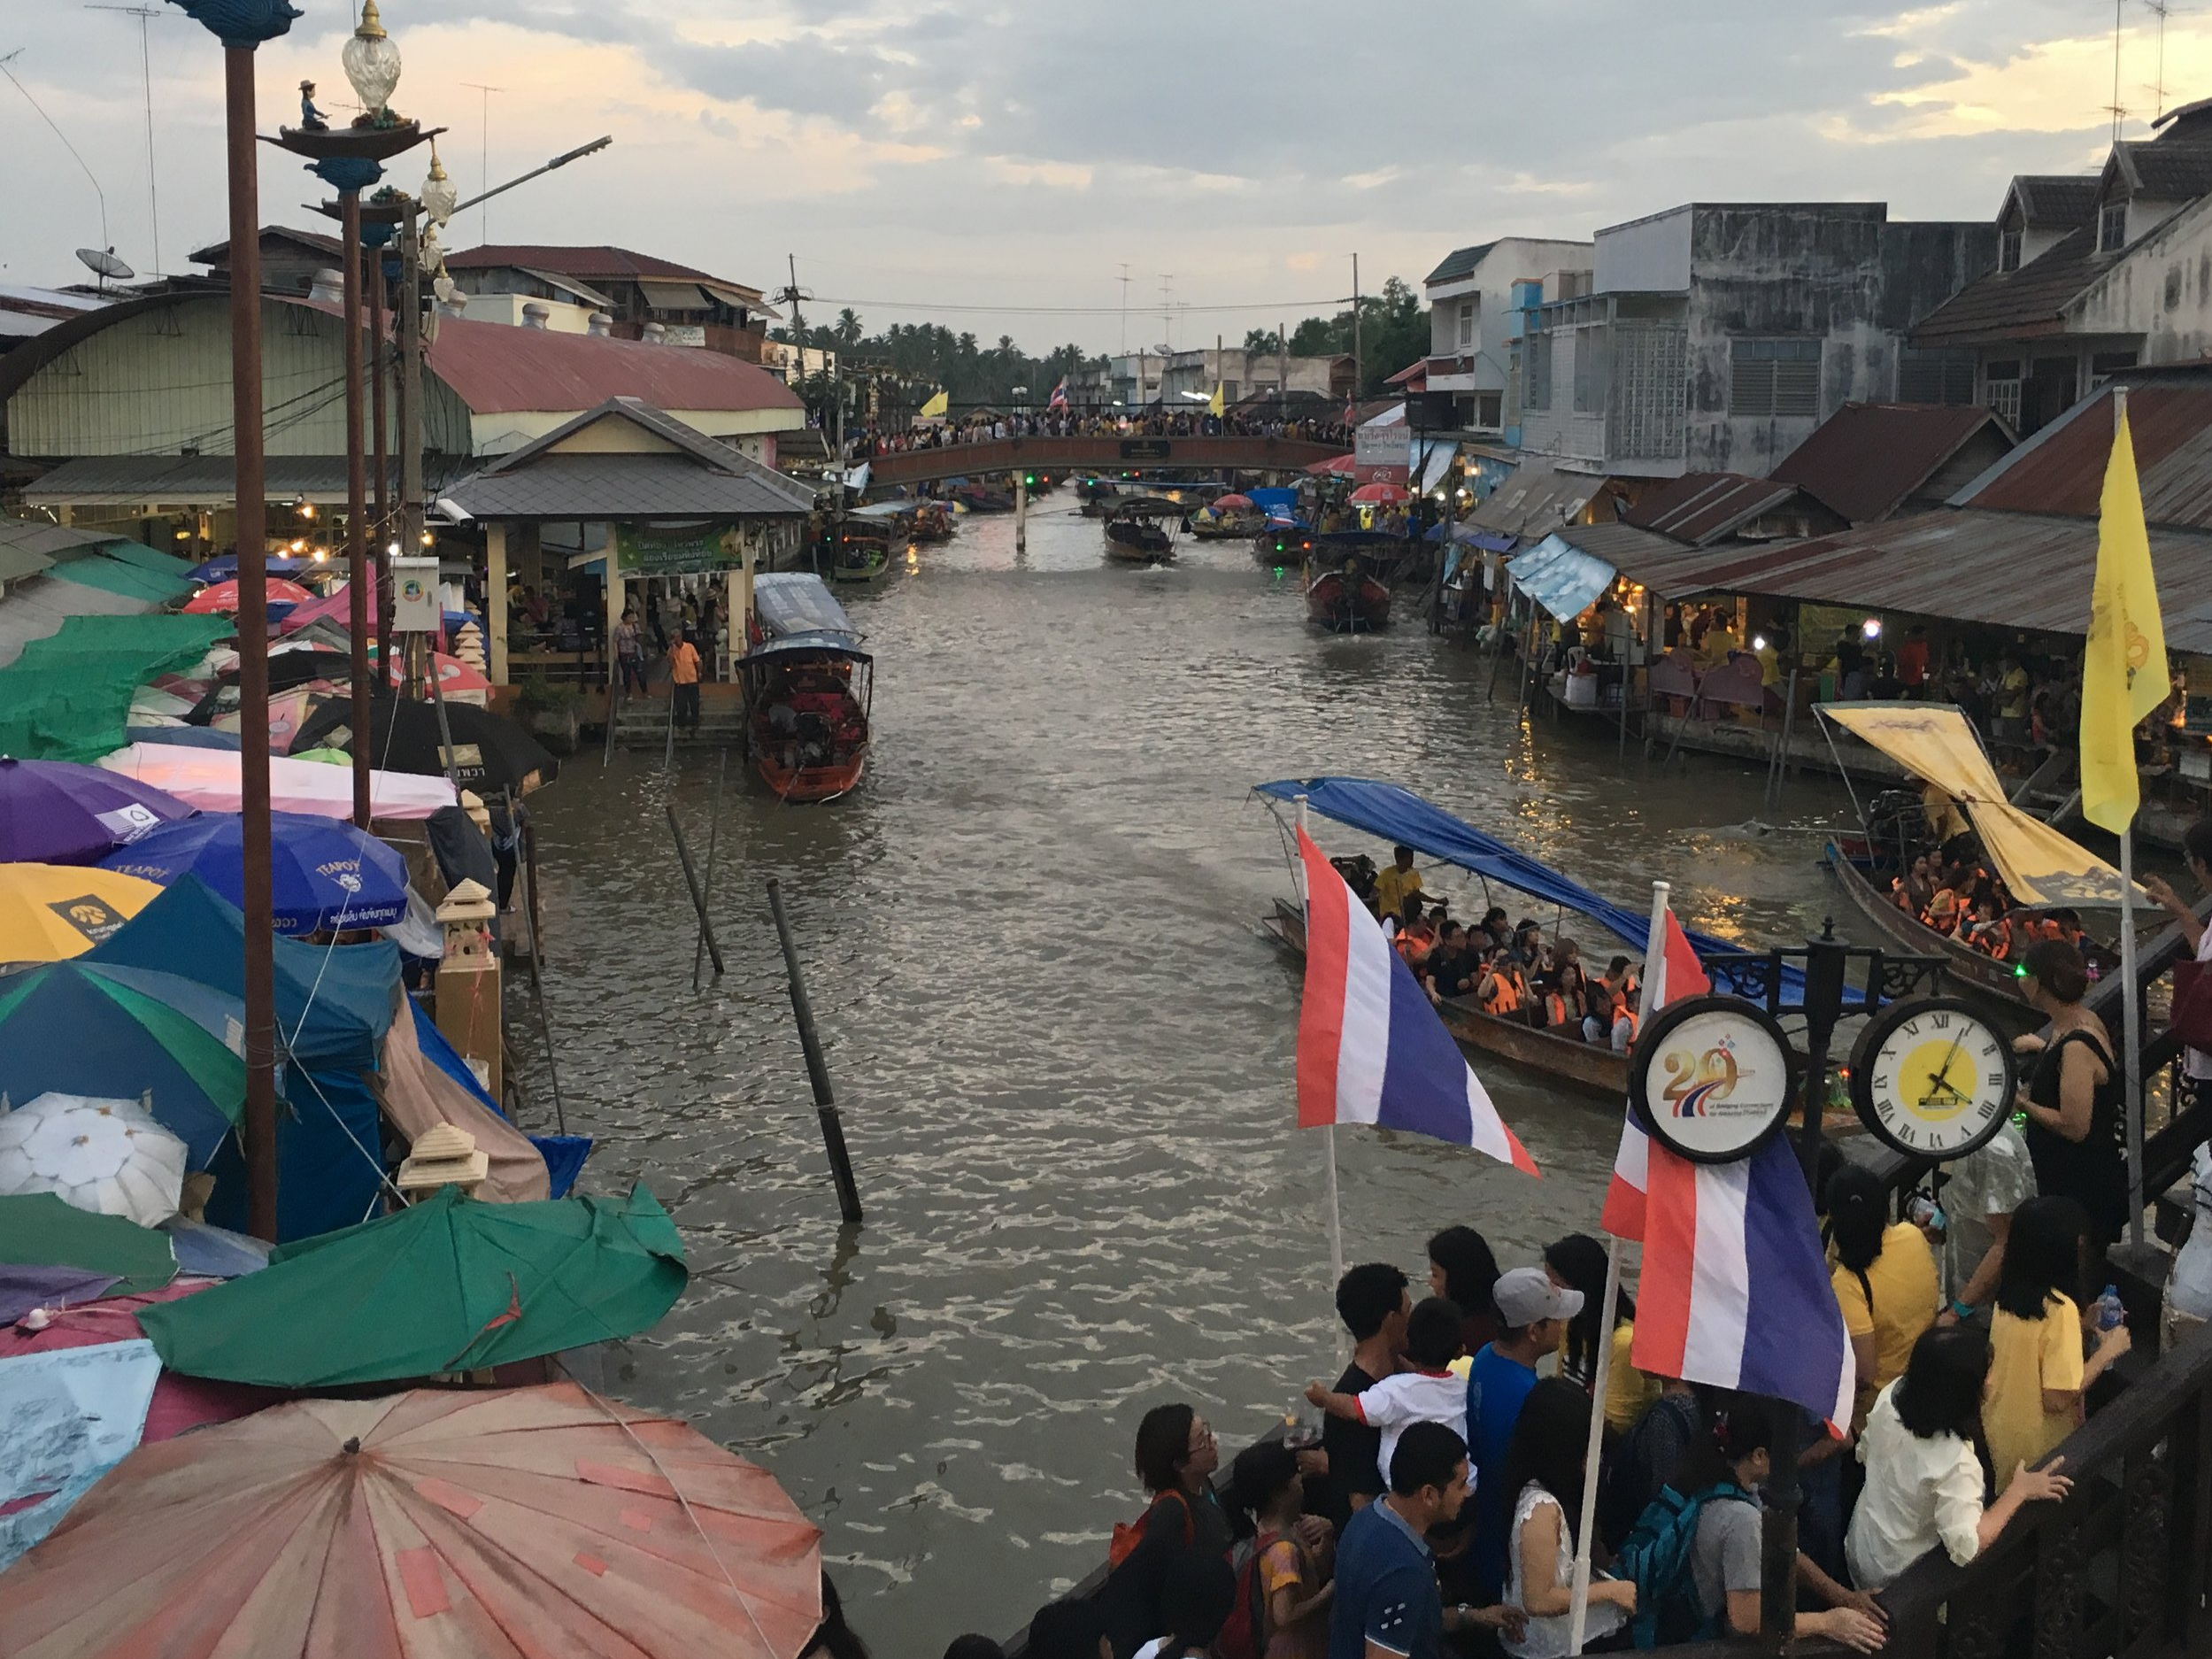 Amphawa Floating Market in Samut Songkhram, Thailand